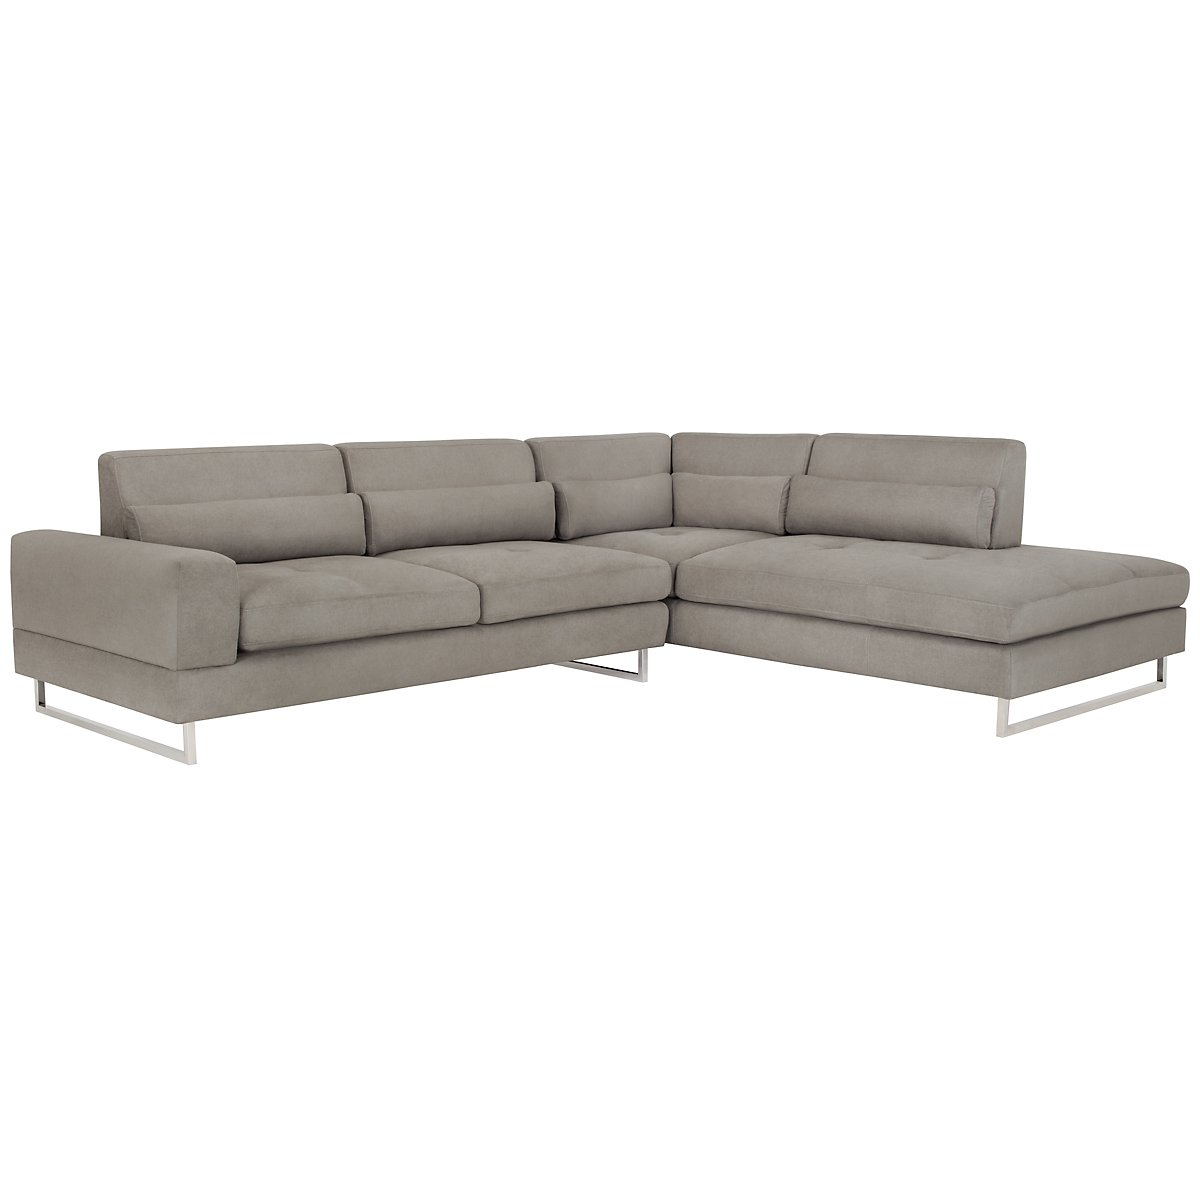 Gray chaise sofa grey sofa chaise thesofa for Ashley microfiber sectional with chaise